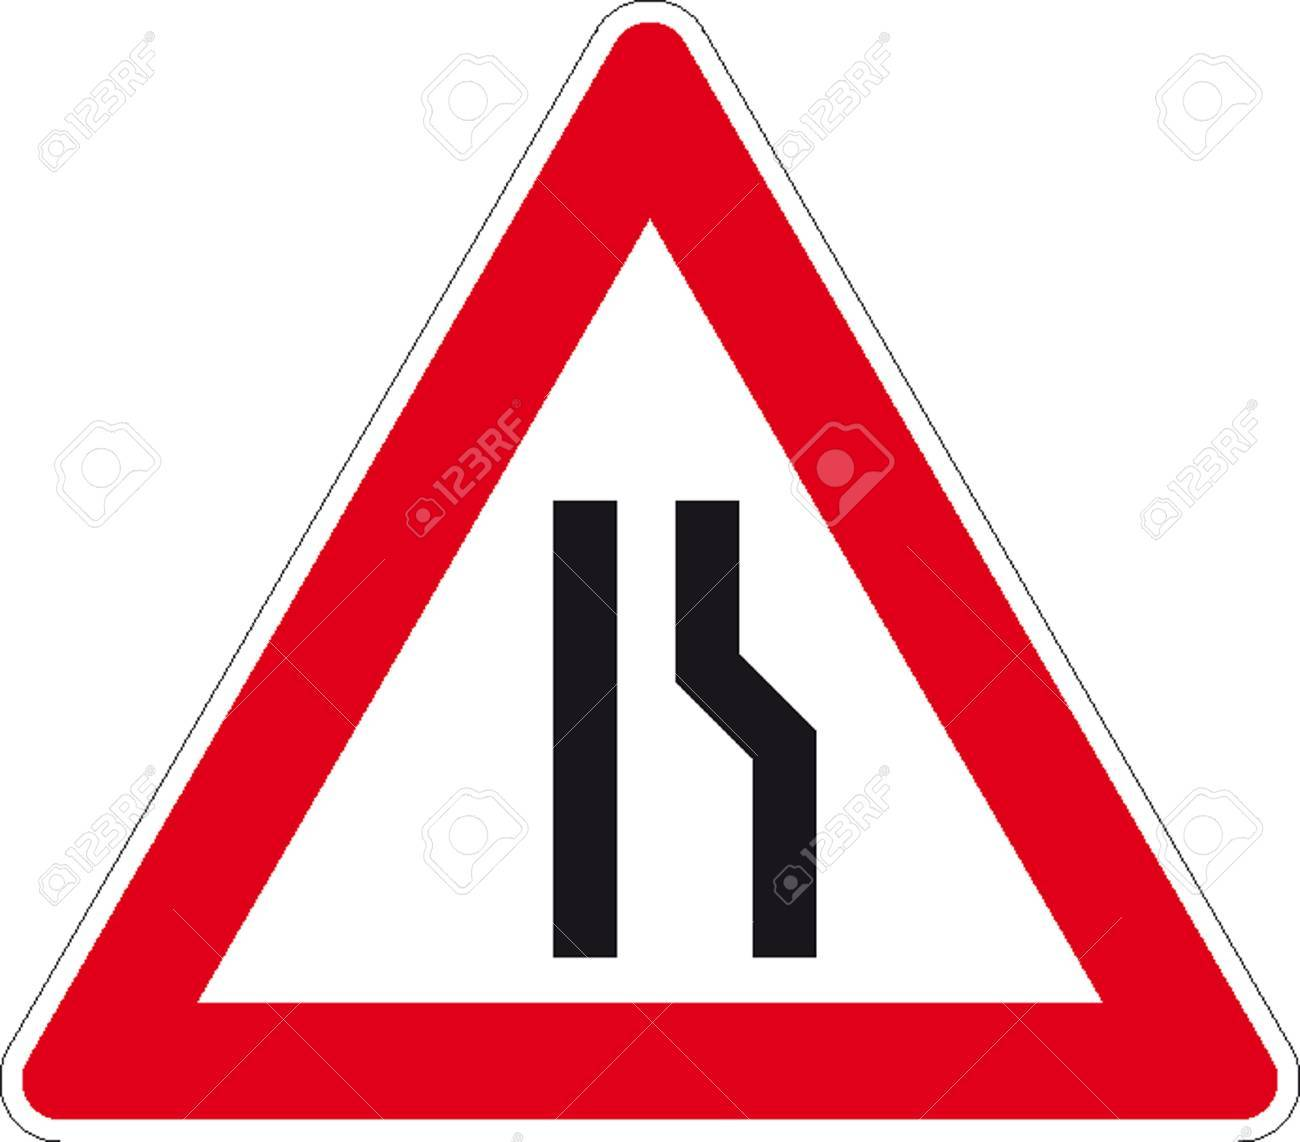 traffic signs Stock Vector - 10647805